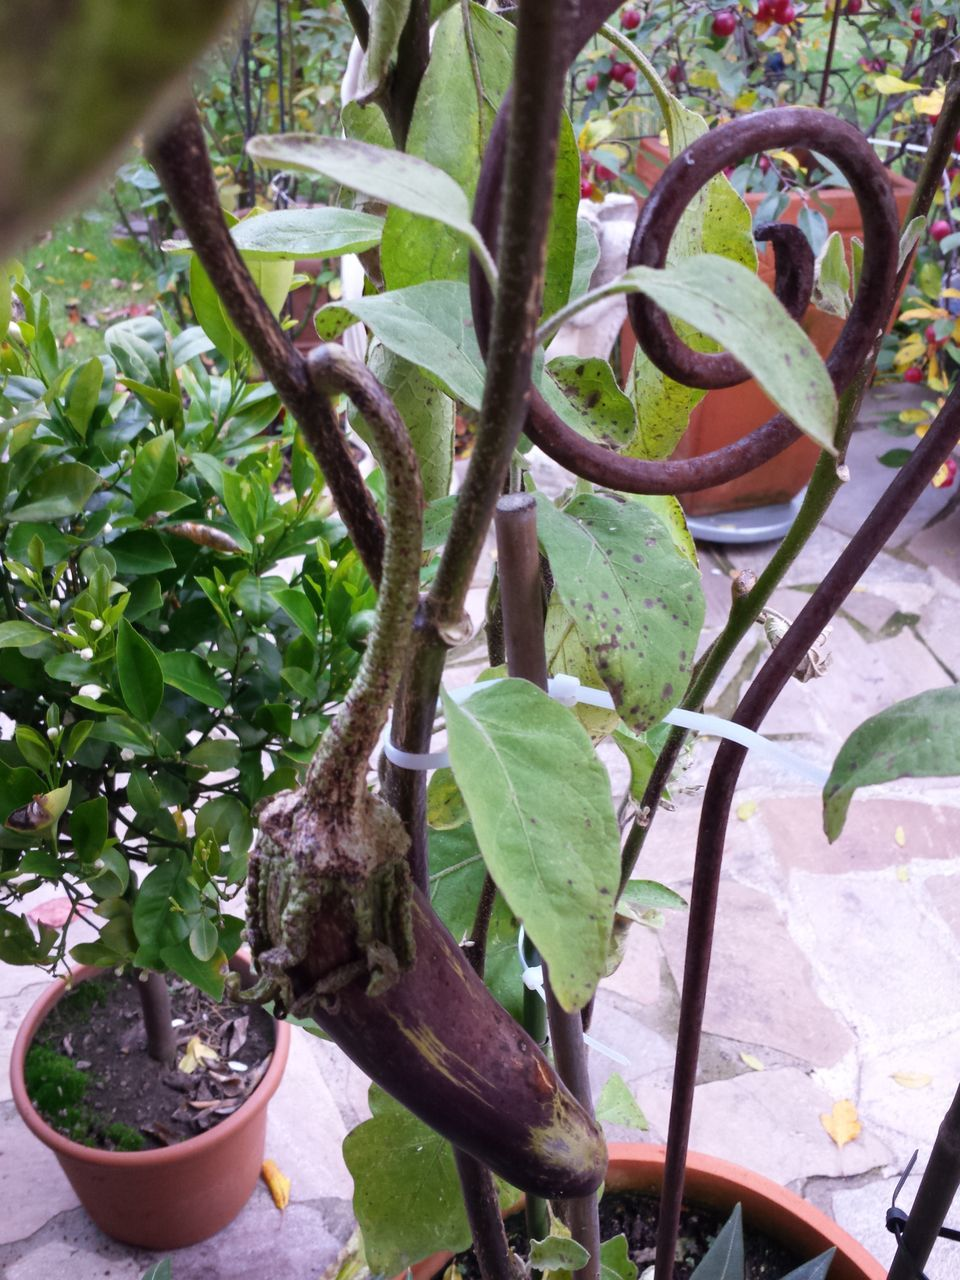 growth, plant, potted plant, day, leaf, no people, nature, outdoors, tree, close-up, beauty in nature, freshness, greenhouse